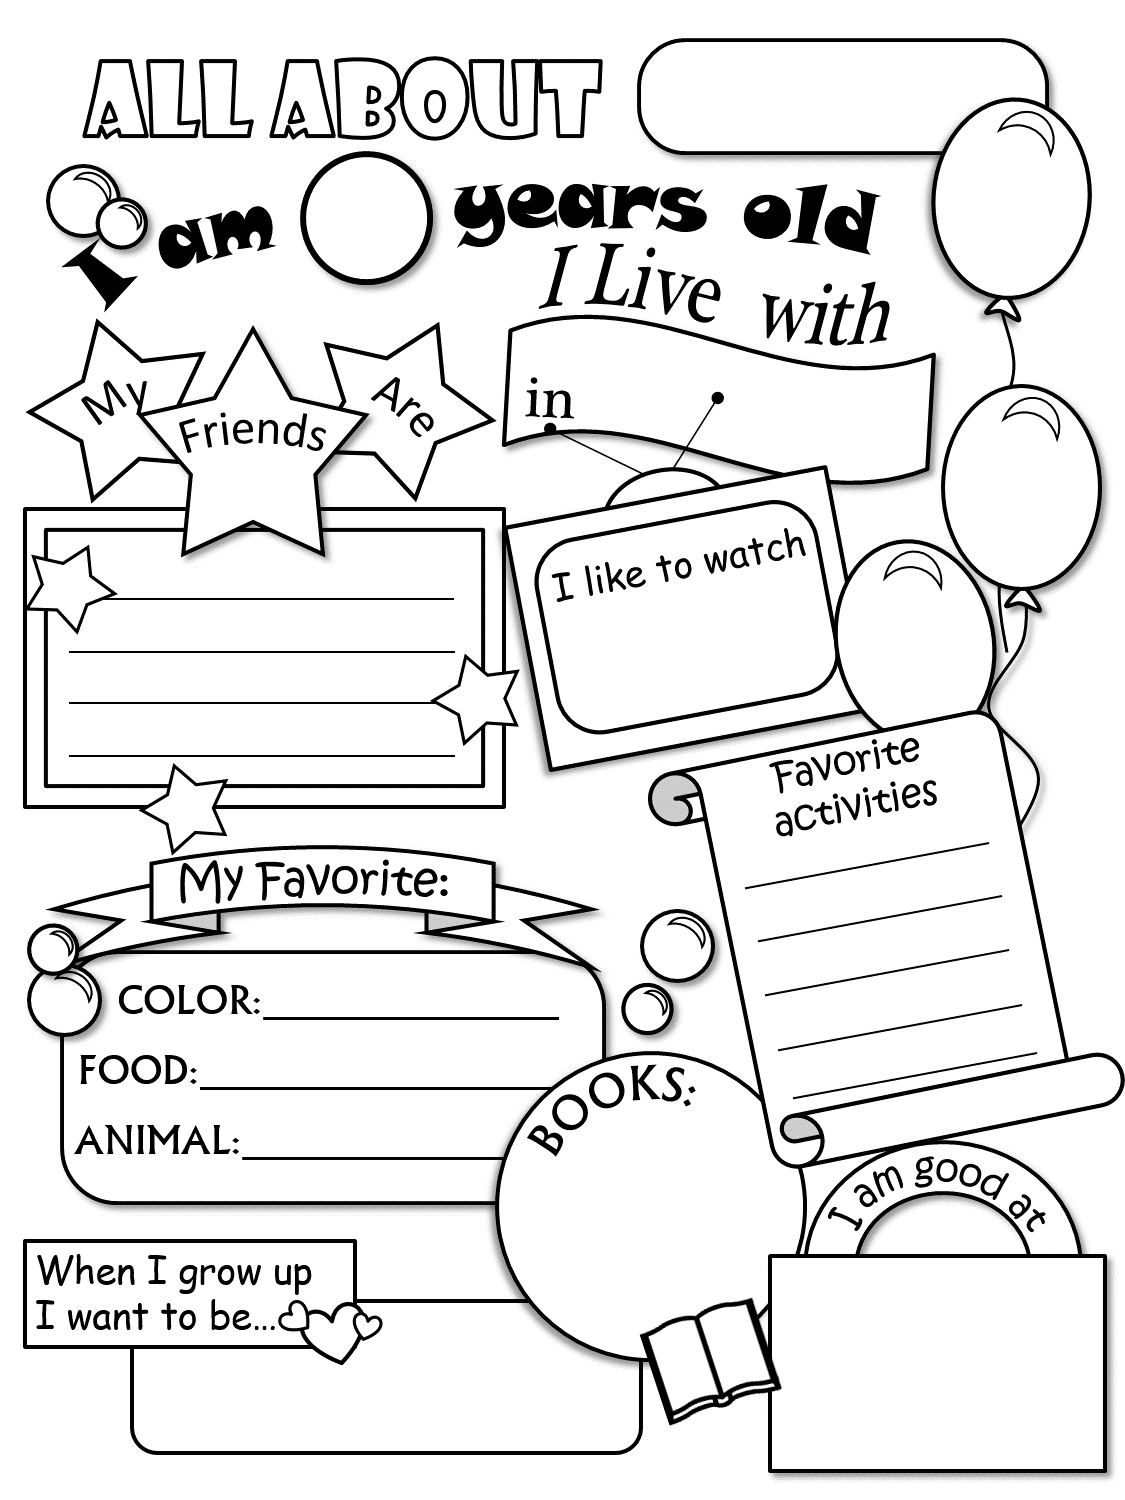 Free Printable About Me Worksheets